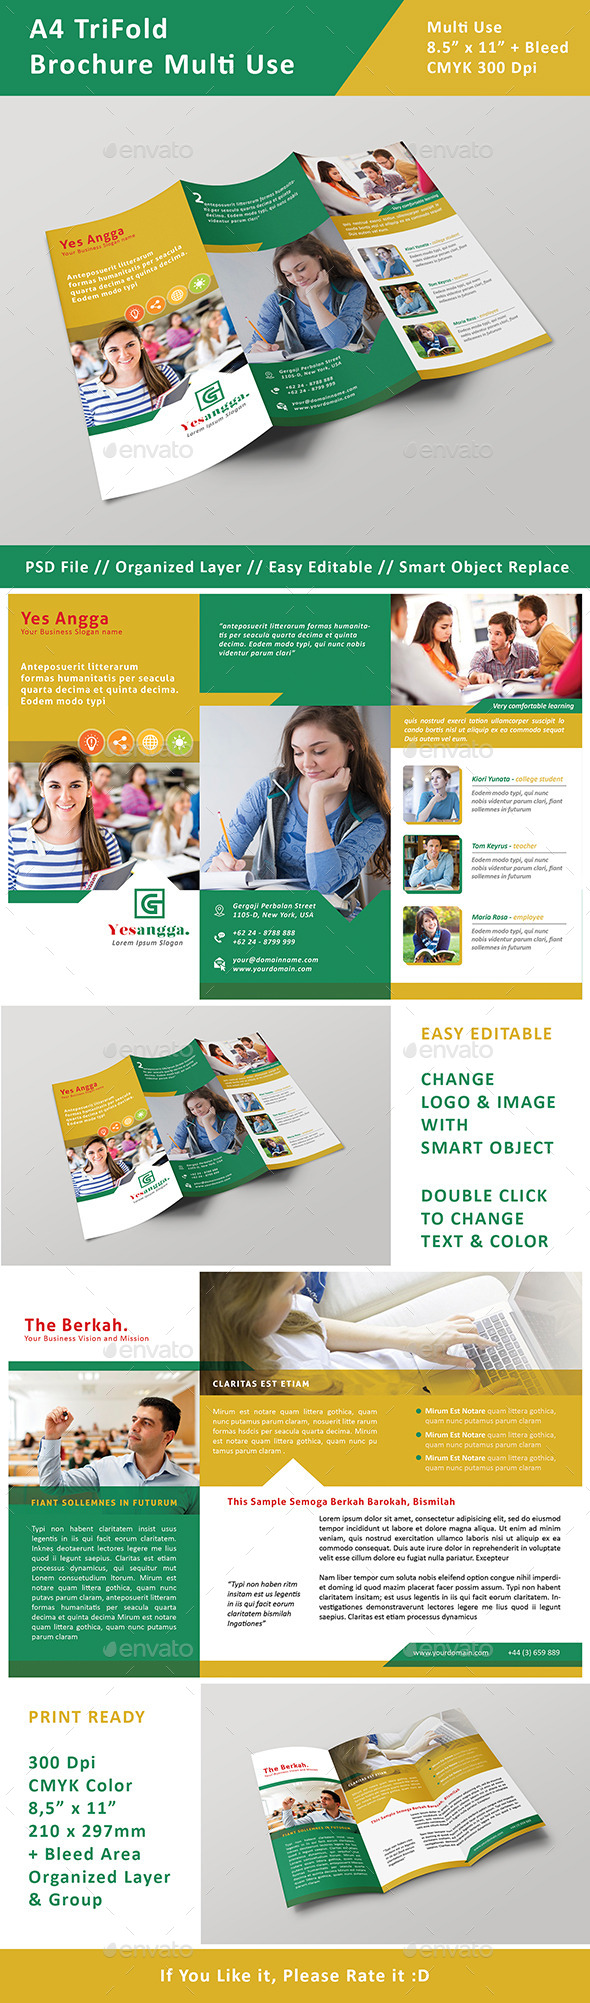 Brochure TriFold Multi Use - Brochures Print Templates